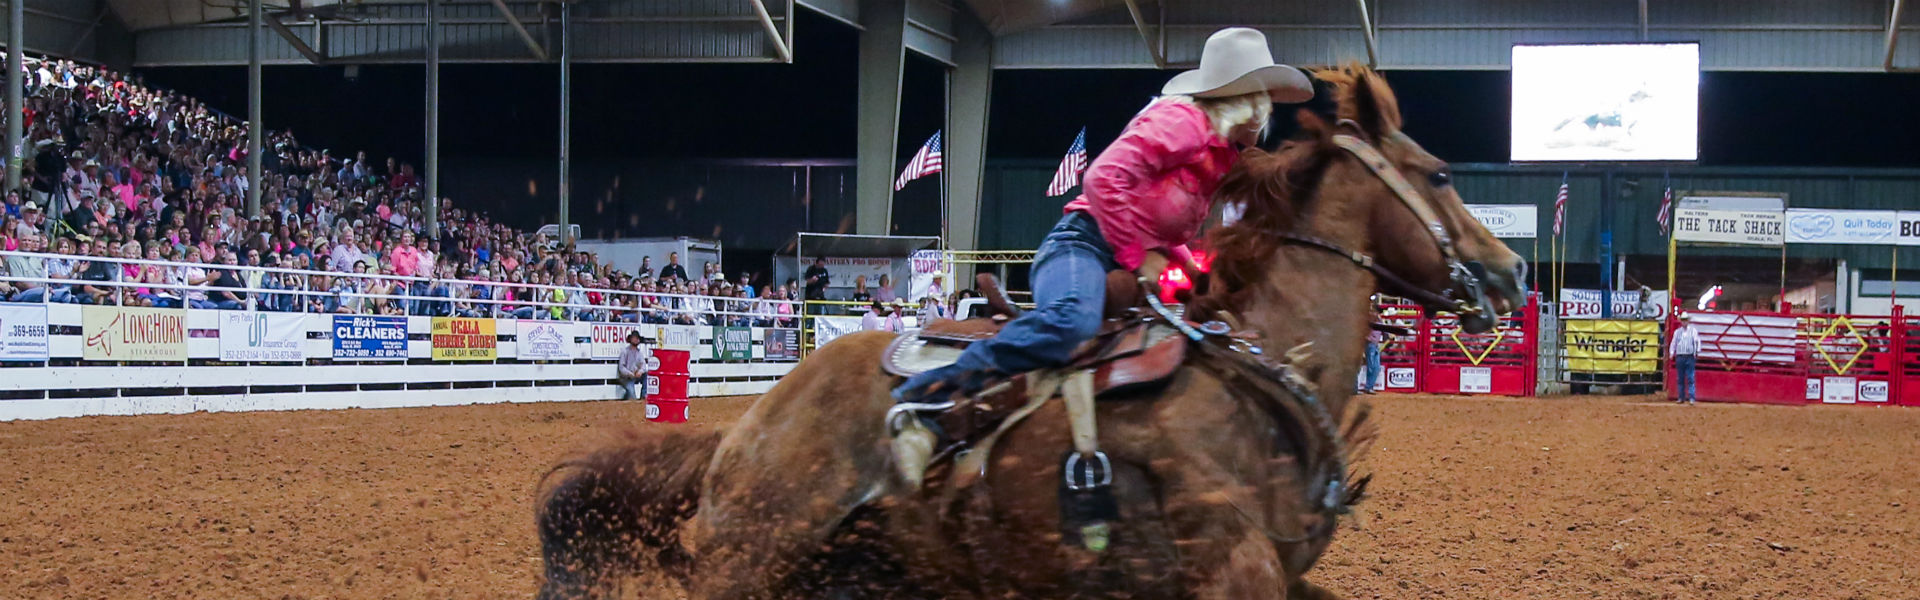 Buy Tickets Now Southeastern Pro Rodeo Ocala Rodeo